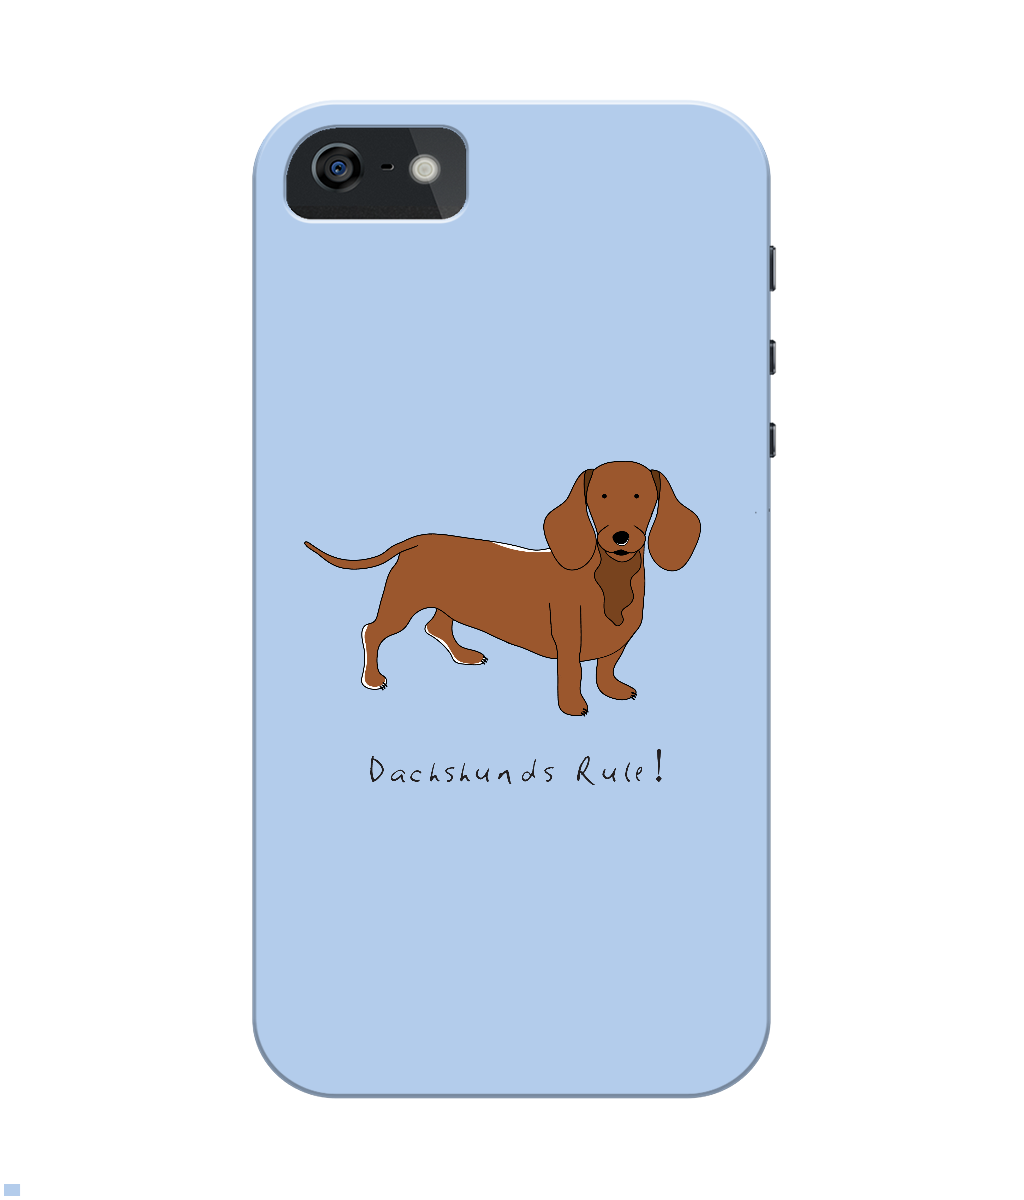 iPhone 4/4s Full Wrap Phone Case - Dachshunds Rule!